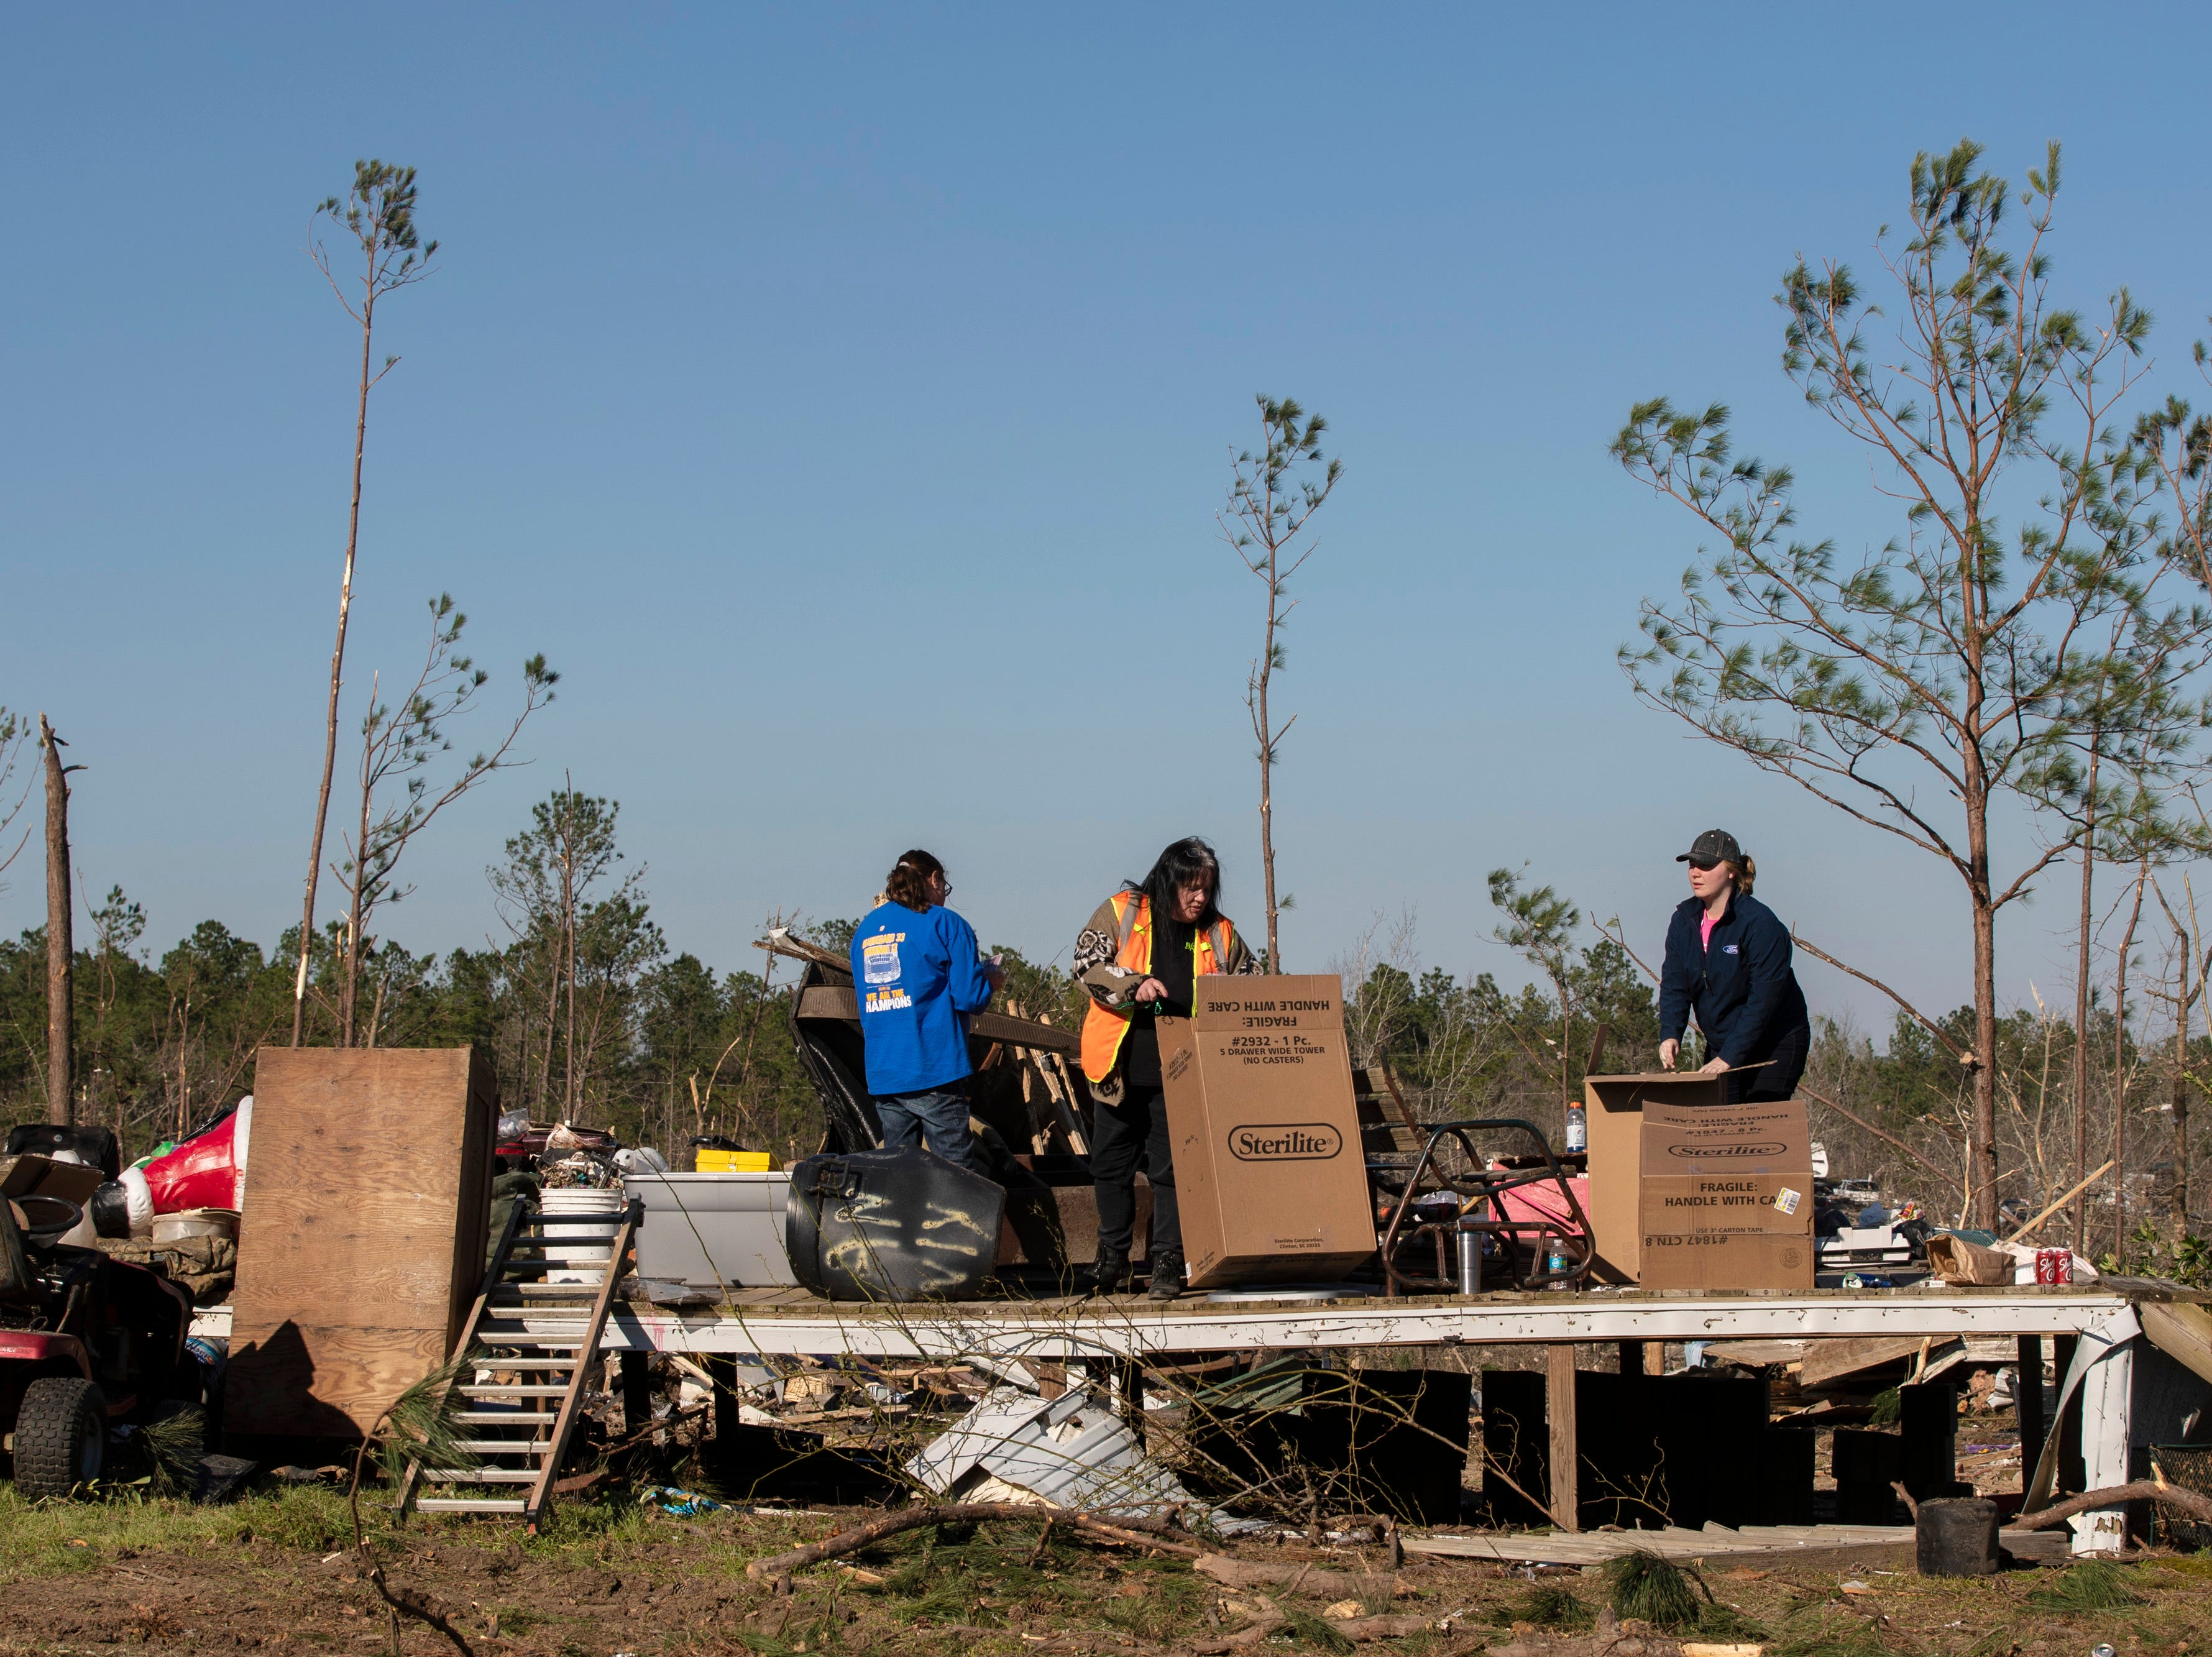 Susanne Polk, center, gathers what is left of her items where her home once stood in Beauregard, Ala. on March 6, 2019.